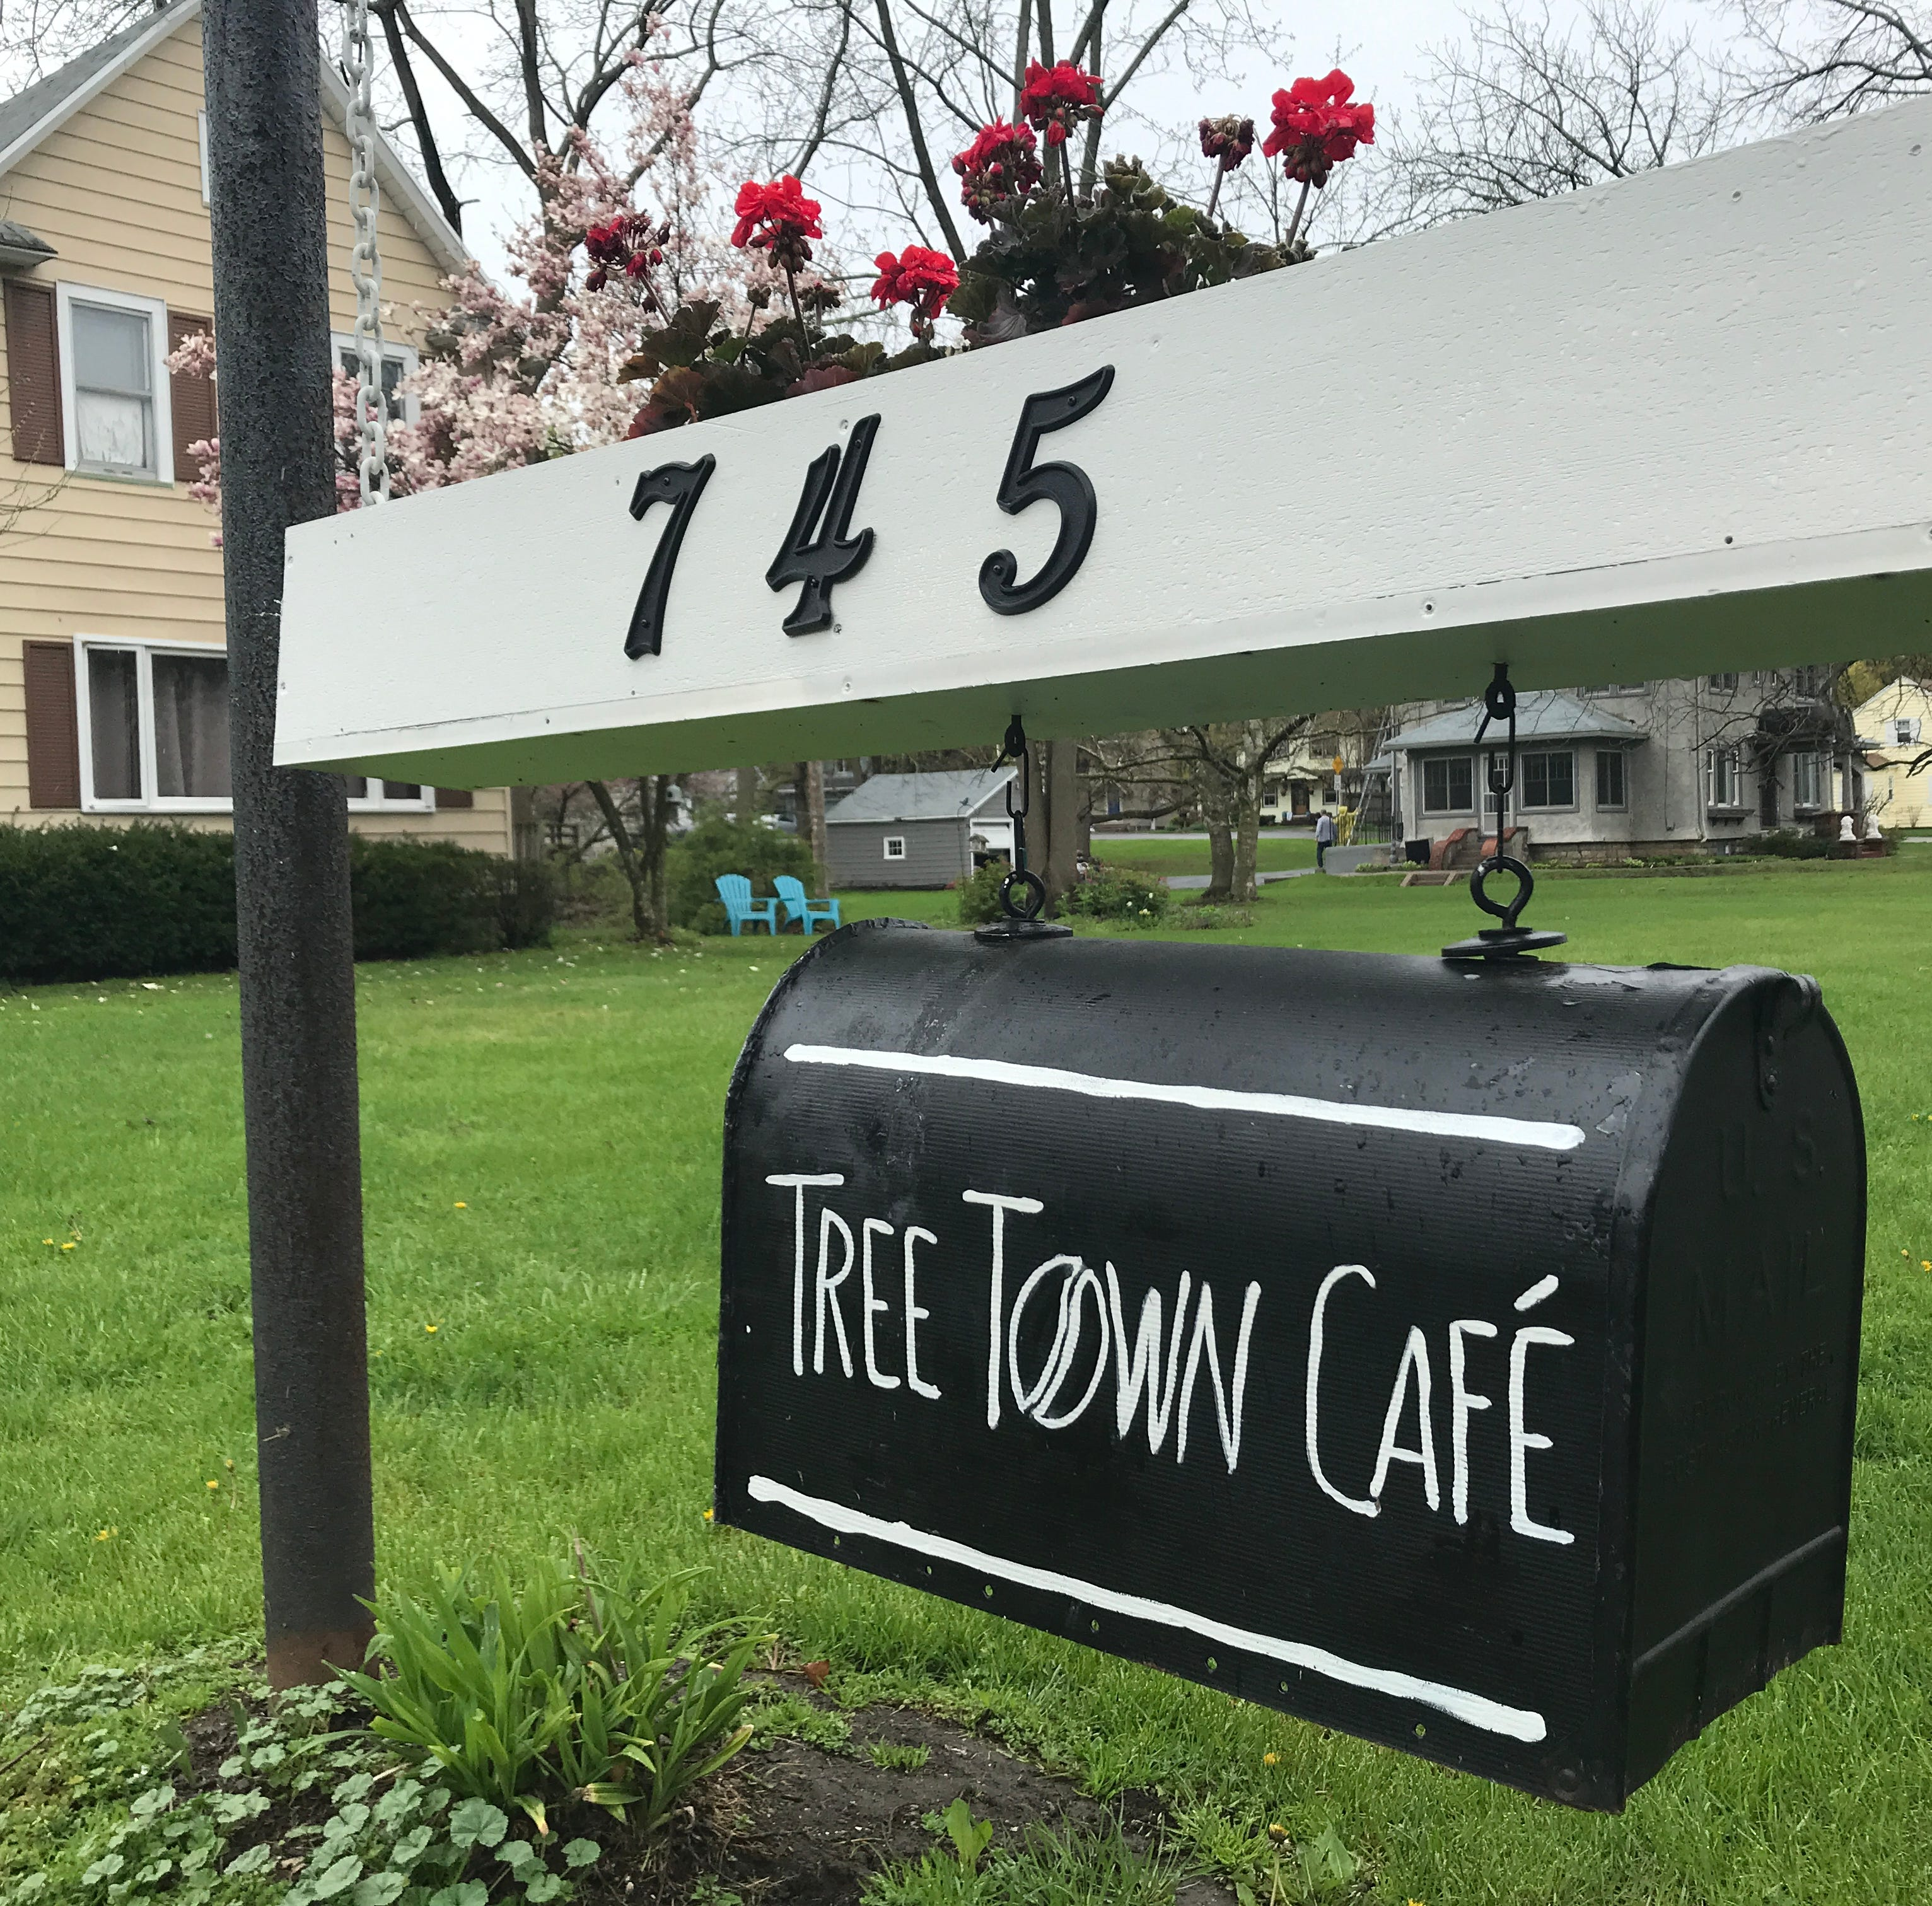 Tree Town Cafe opens in former Bernunzio's space in Brighton